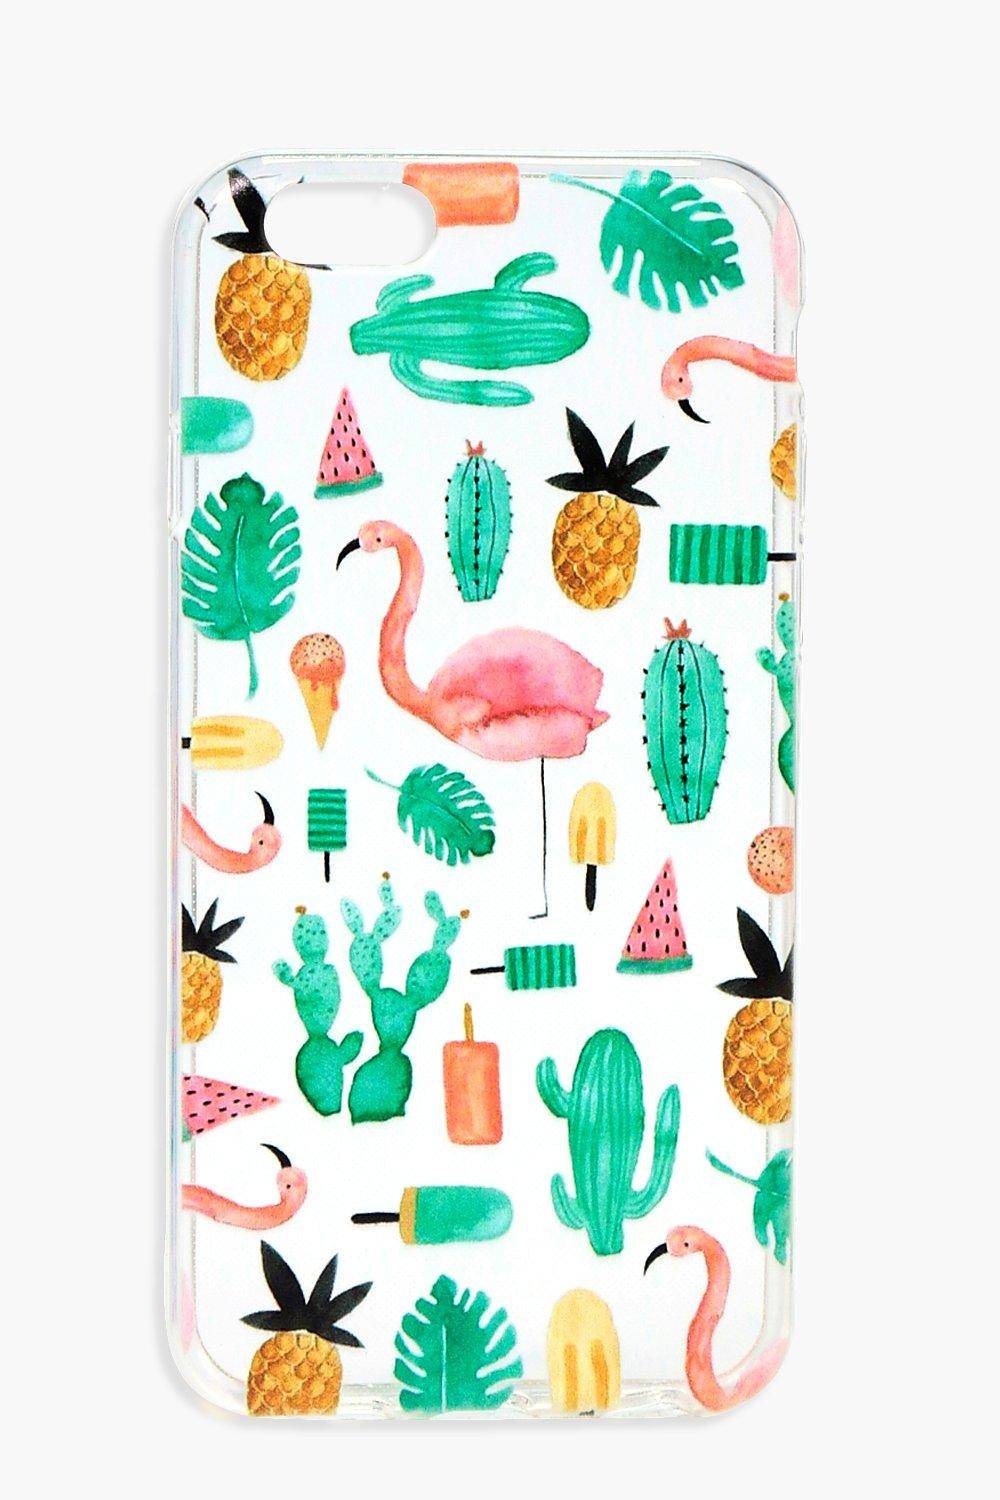 & Cactus iPhone 6 Case - multi - Flamingo & Cactus